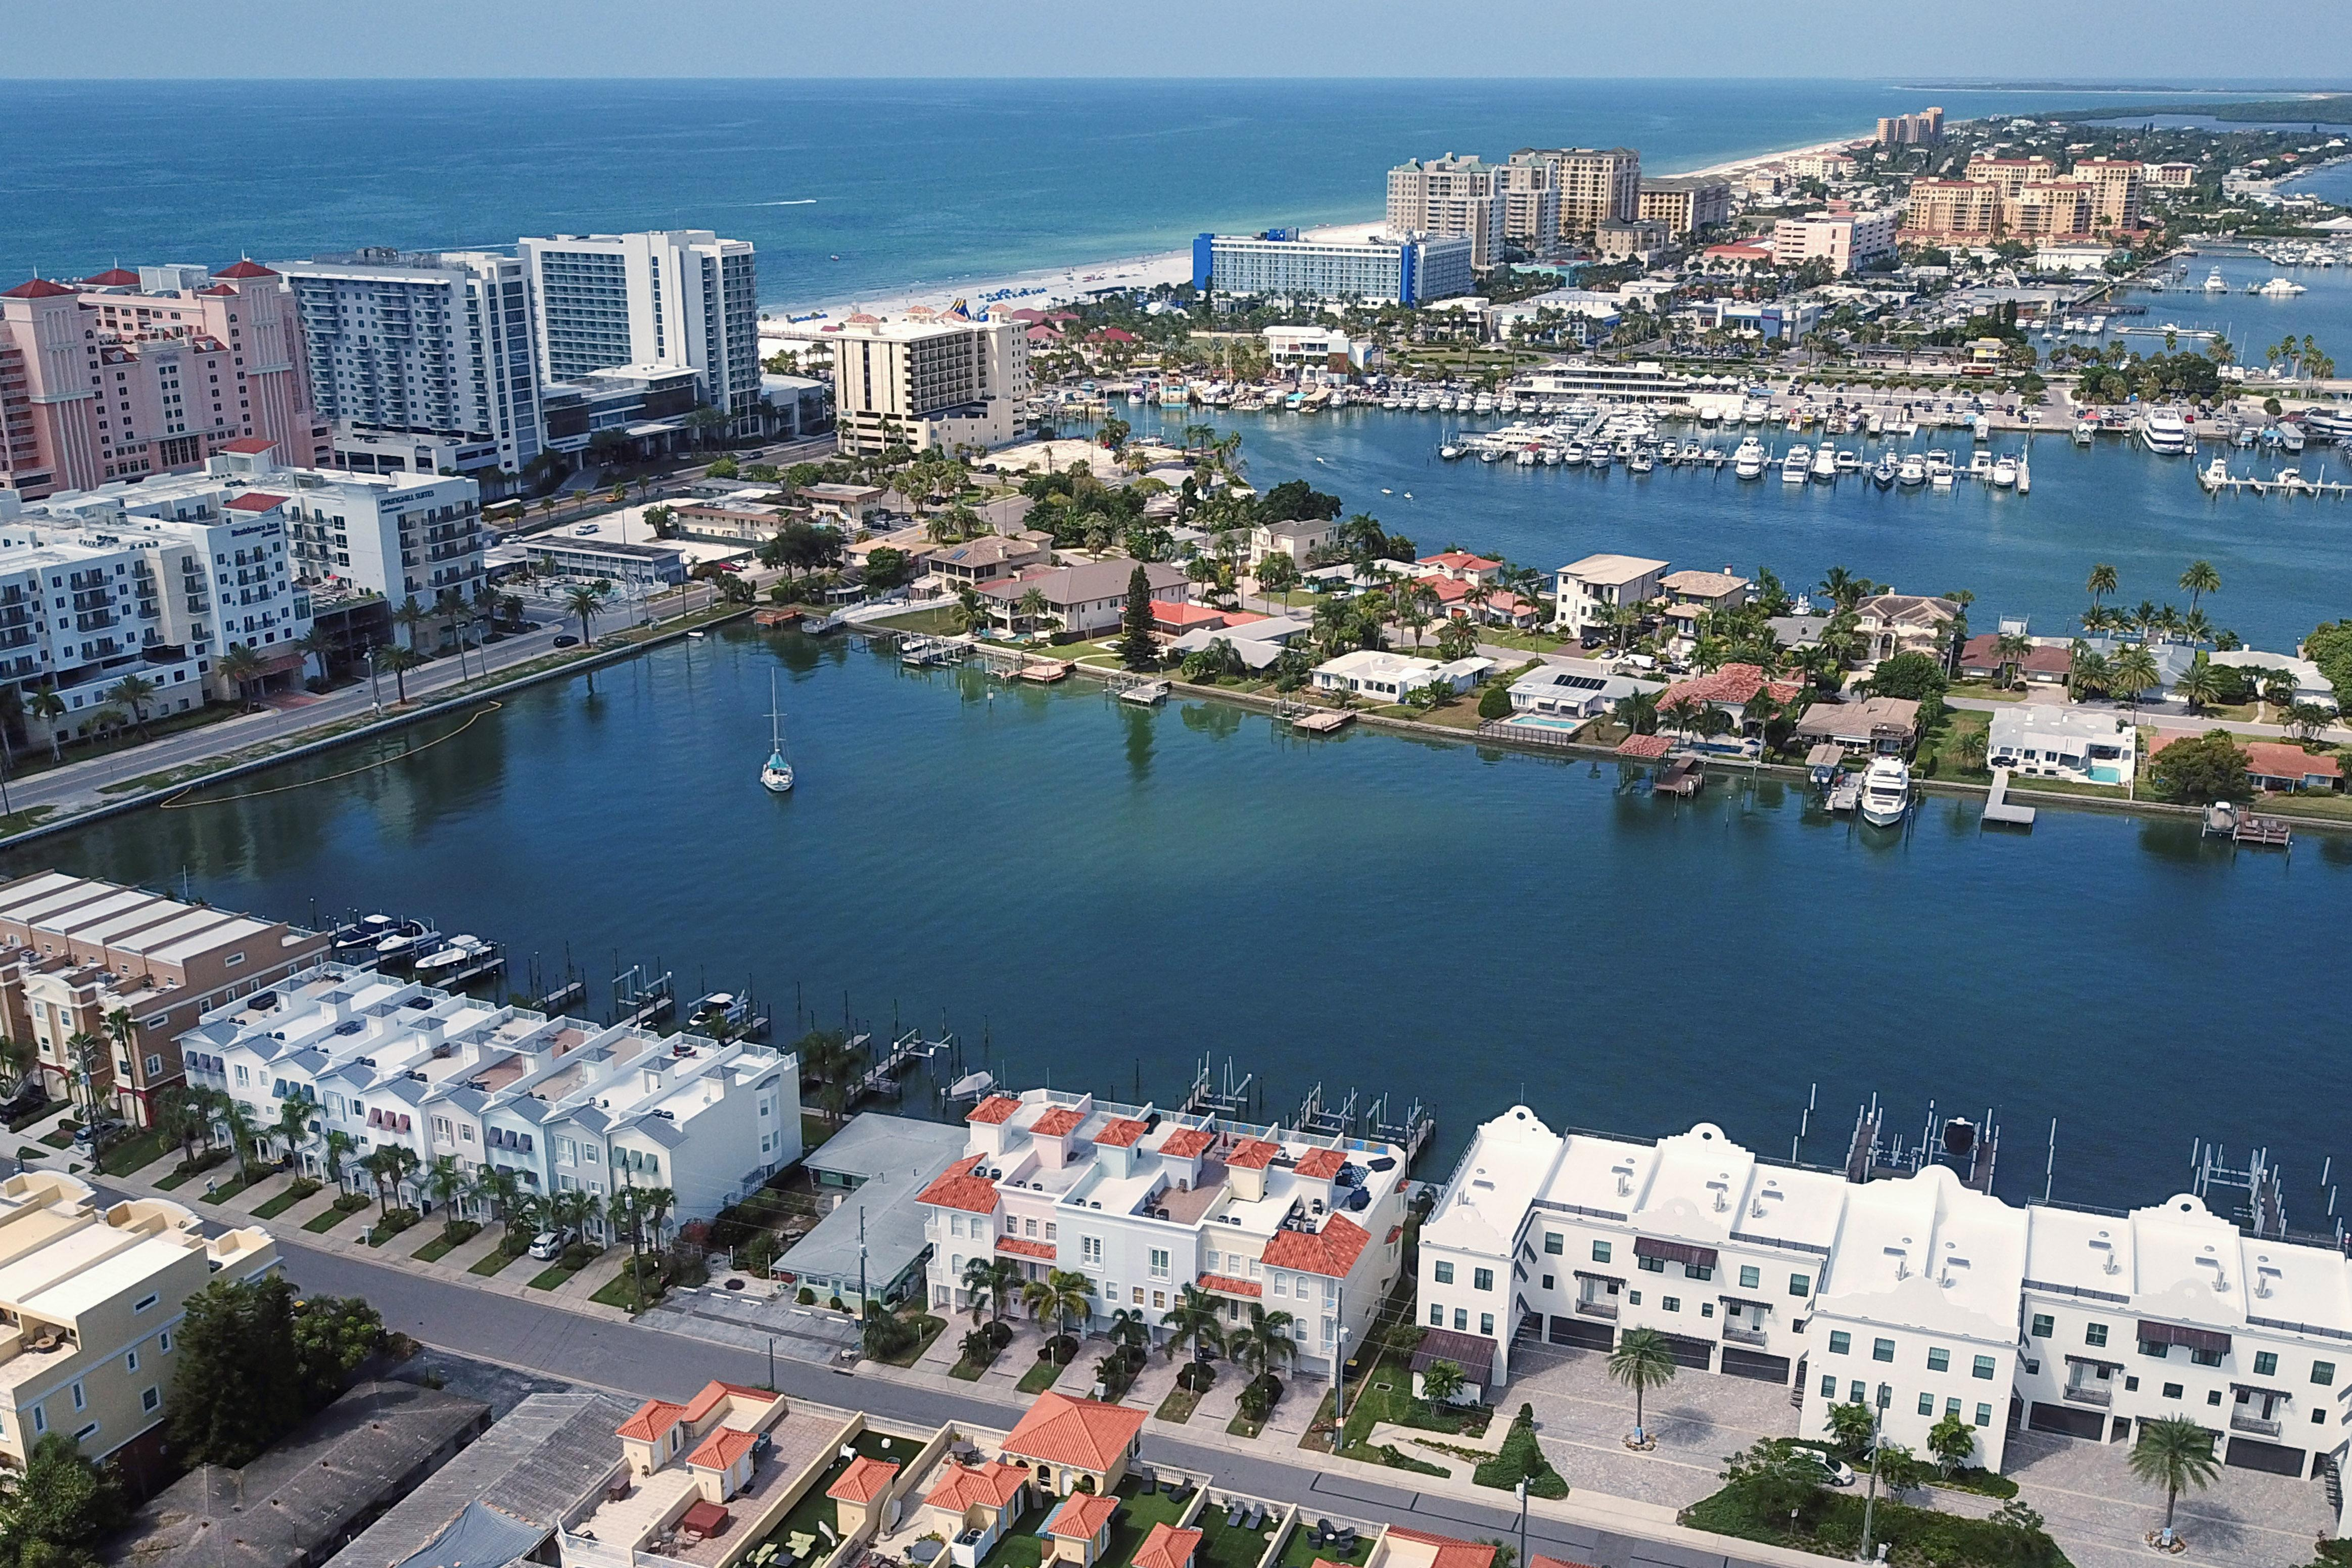 Your rental is conveniently located a half-mile from downtown Clearwater Beach.